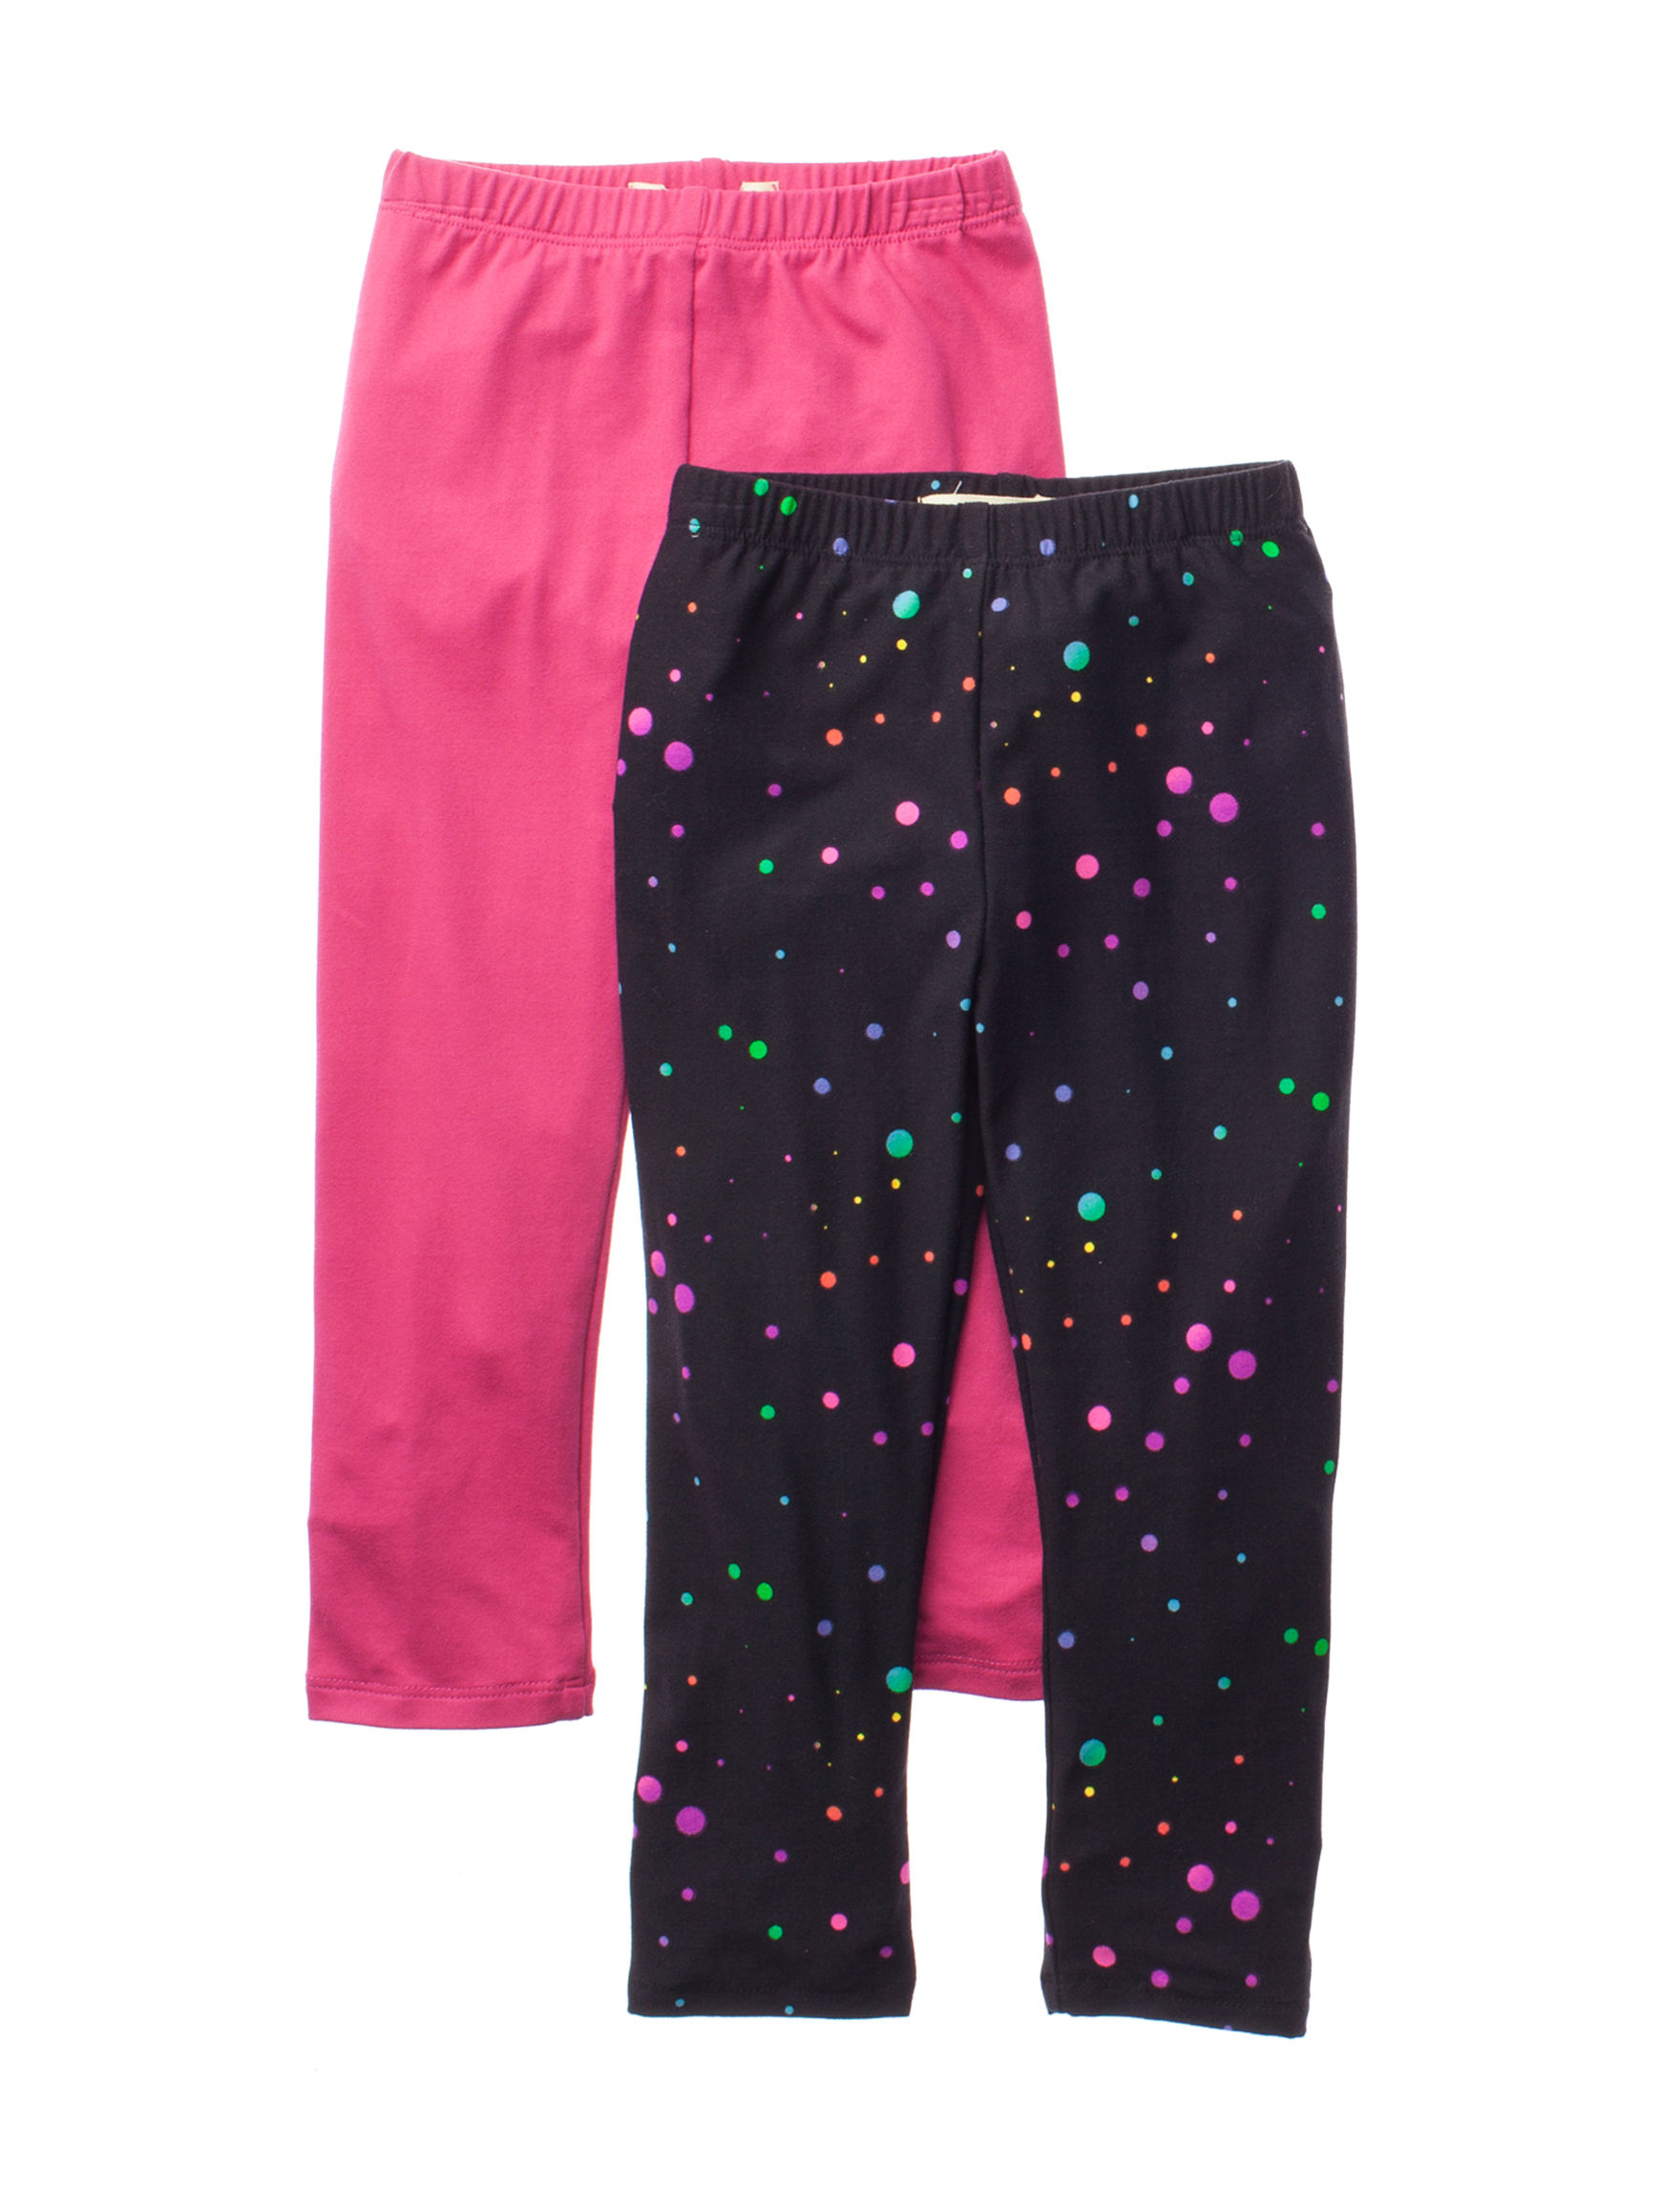 Wishful Park Black Multi Leggings Stretch